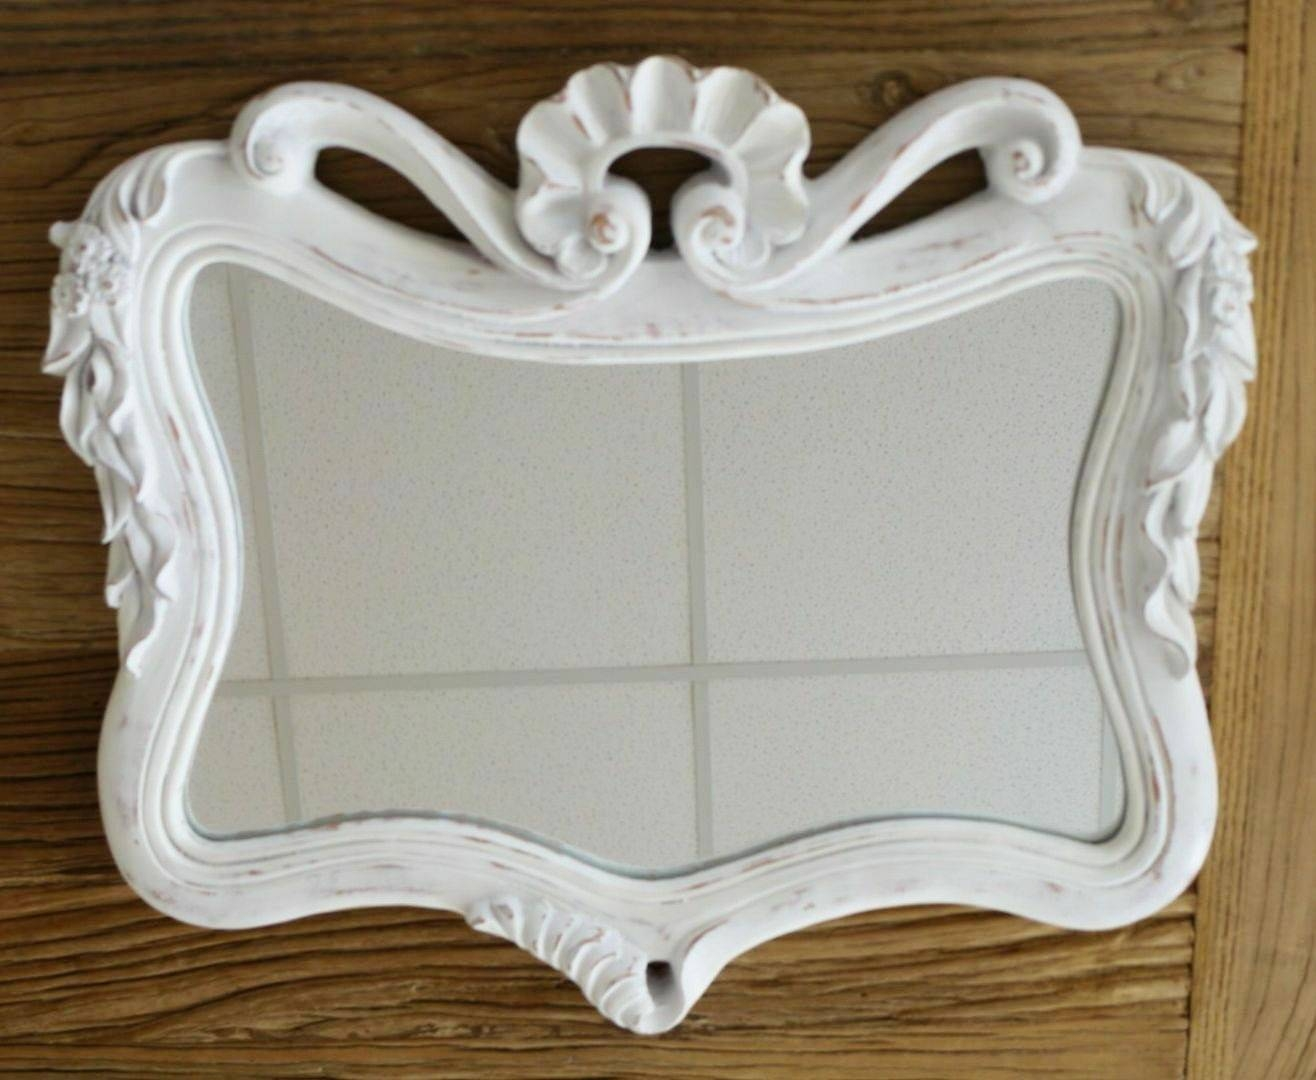 Ornate Shabby Chic Wavy Frame Mirror, White, Small - 40X35Cm in Small Ornate Mirrors (Image 17 of 25)